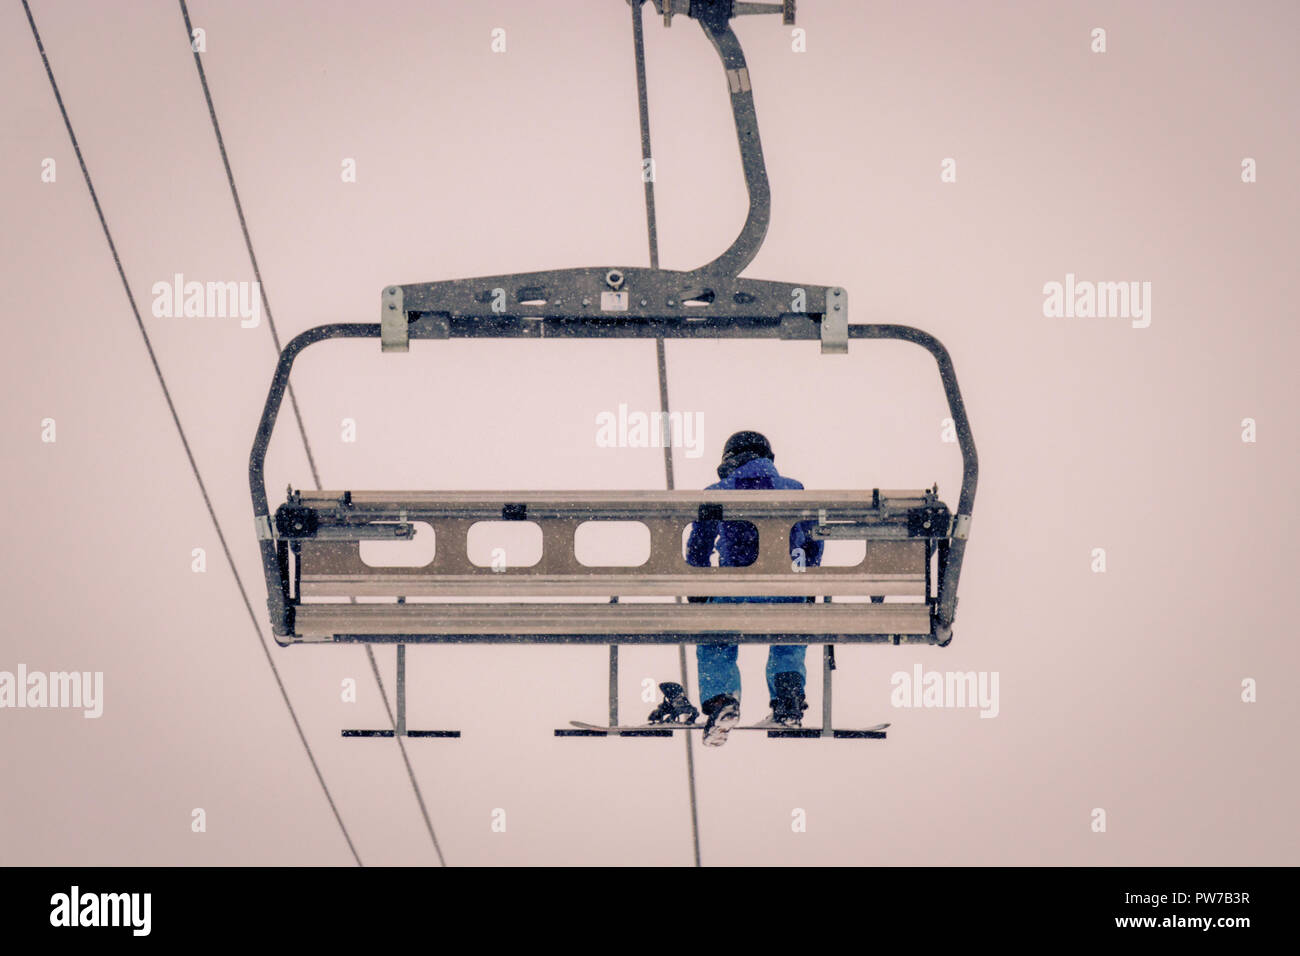 A lonely snowboarder sitting completely alone in a chairlift. Freezing cold foggy weather is making this ride extremely uncomfortable. Taken in Tignes Stock Photo